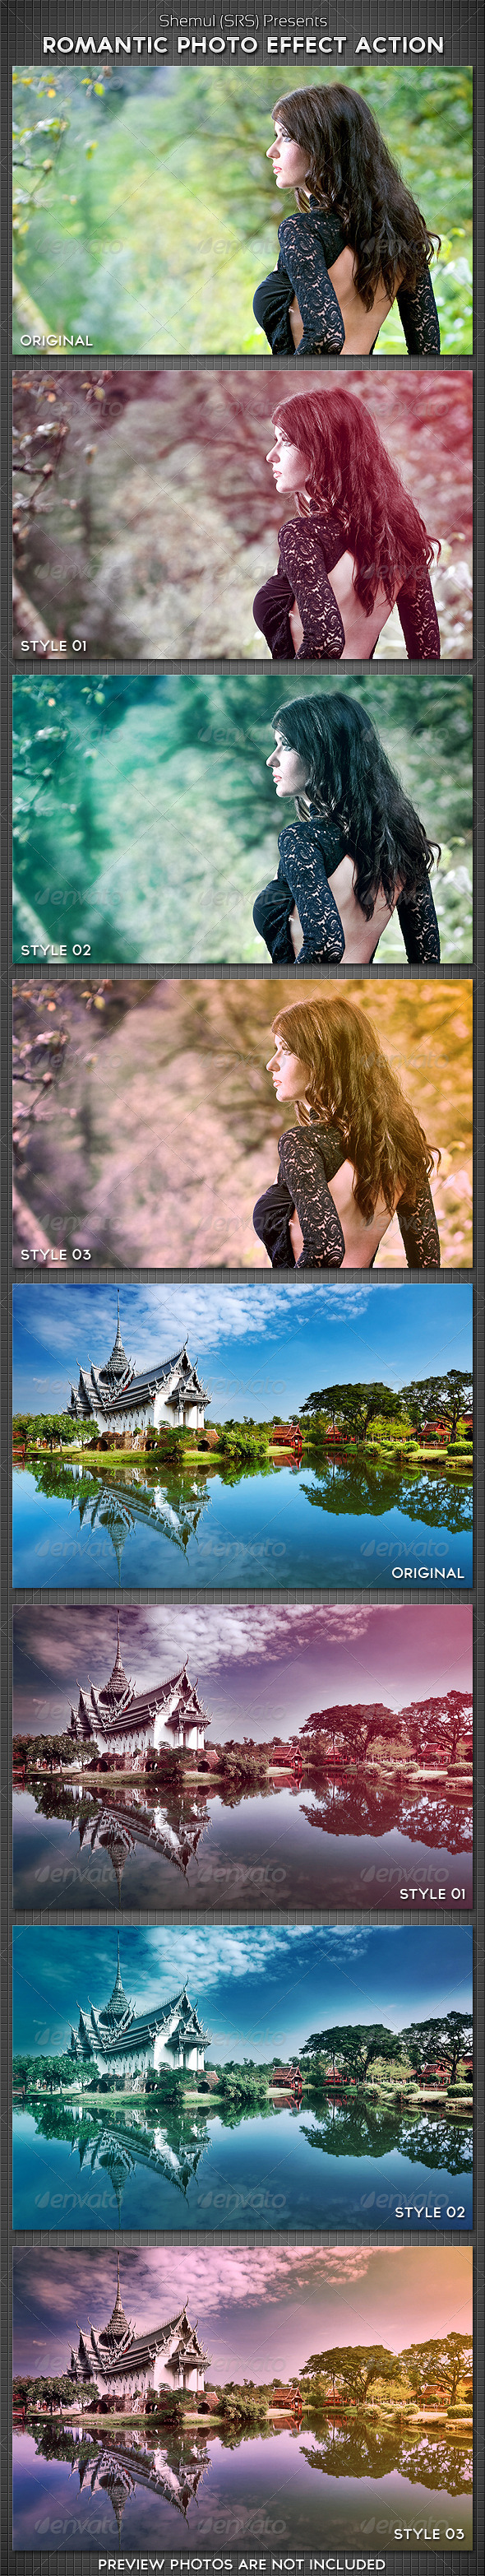 Romantic Photo Effect Action - Photo Effects Actions